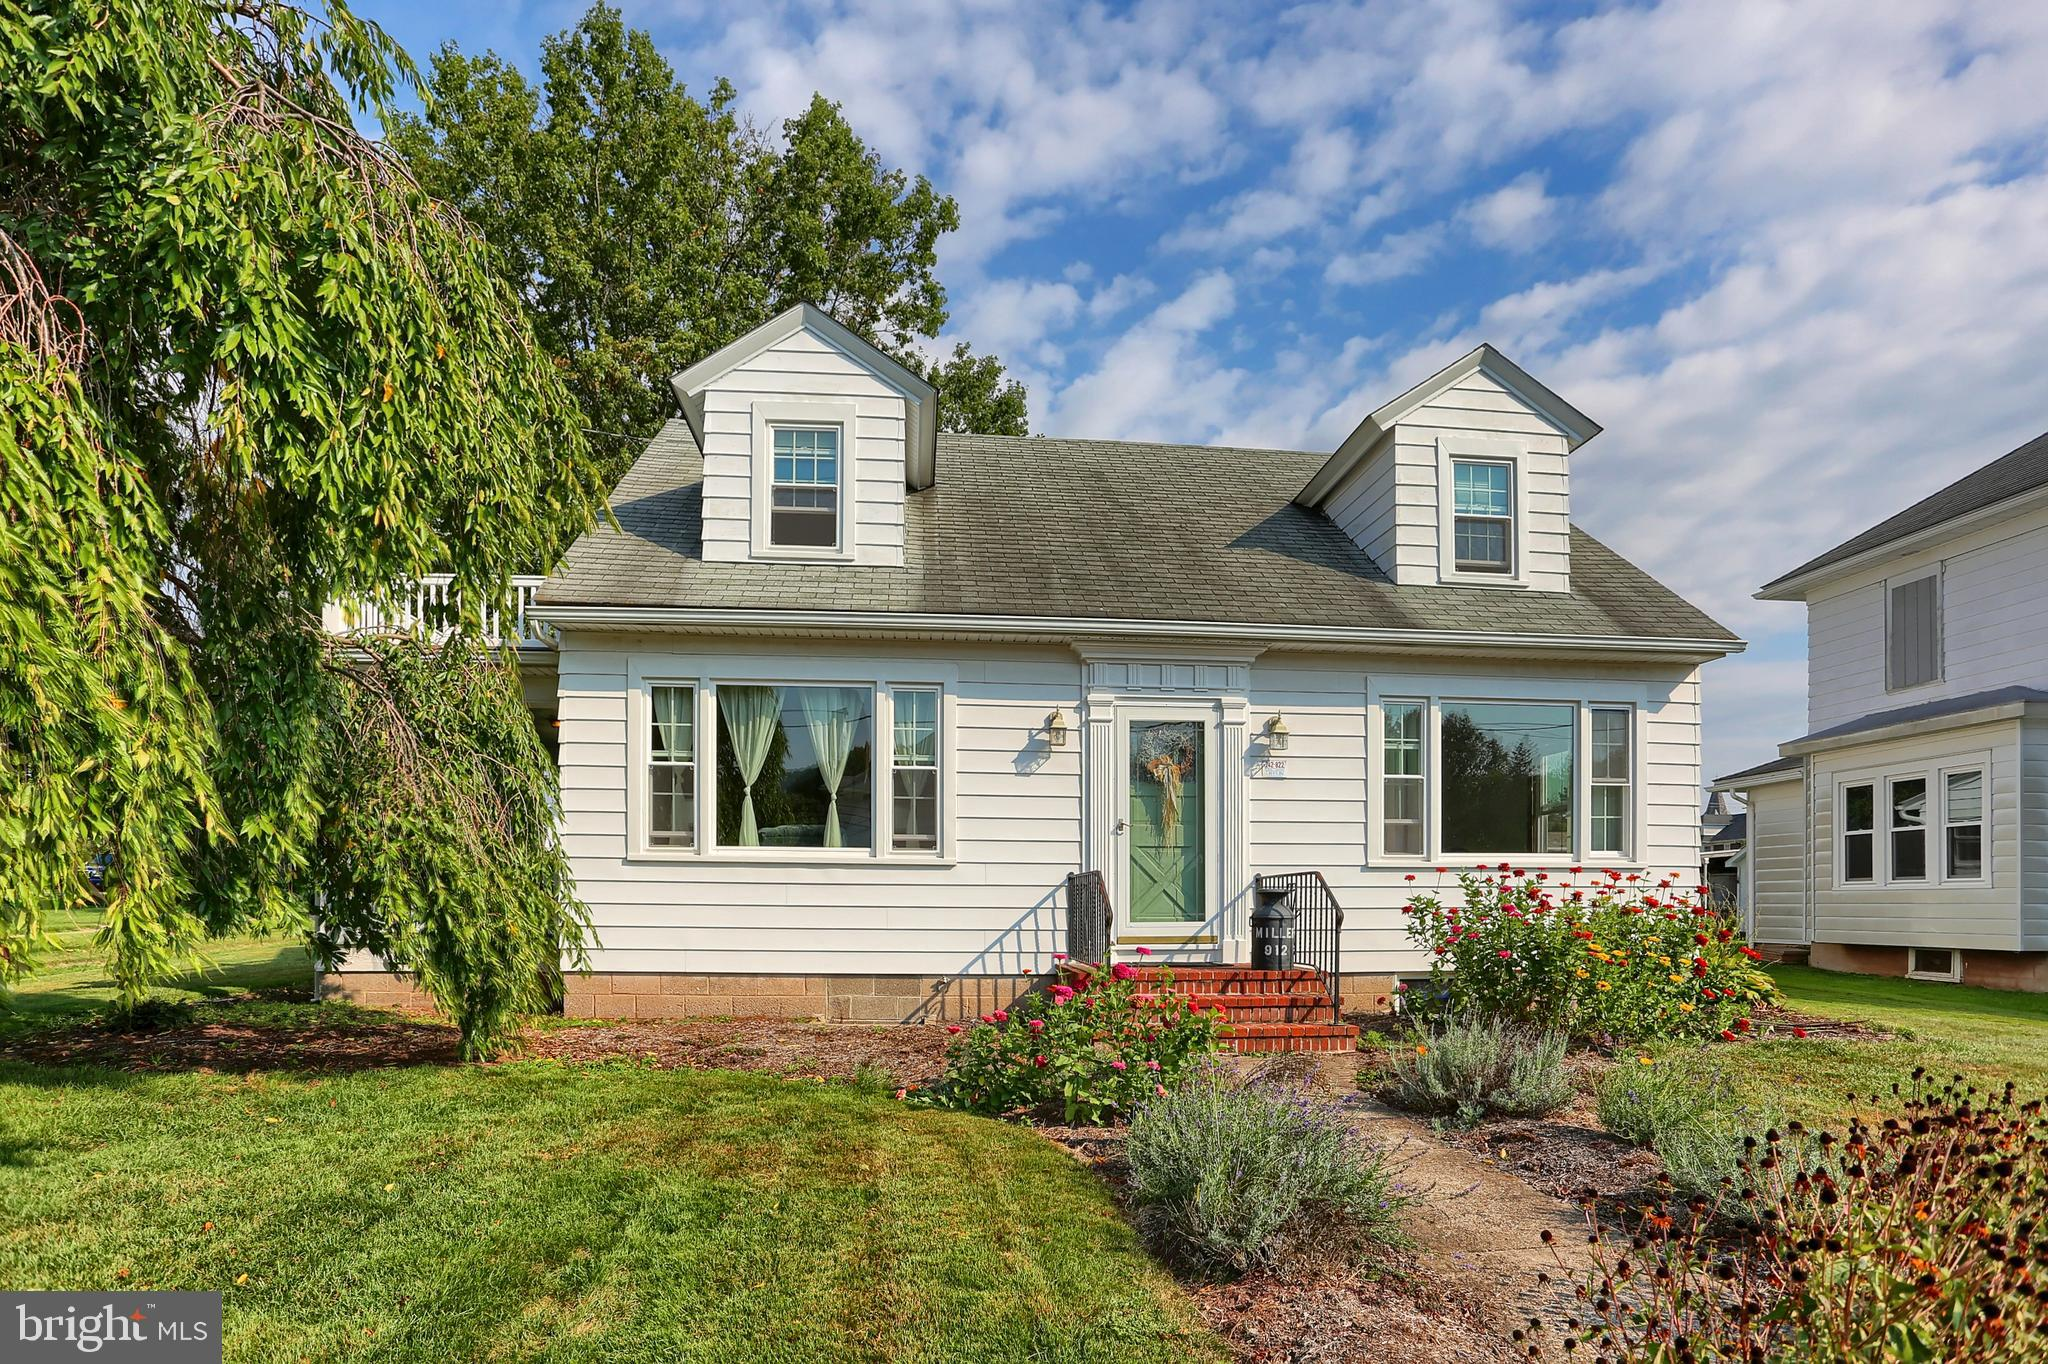 912 W MAPLE STREET, VALLEY VIEW, PA 17983